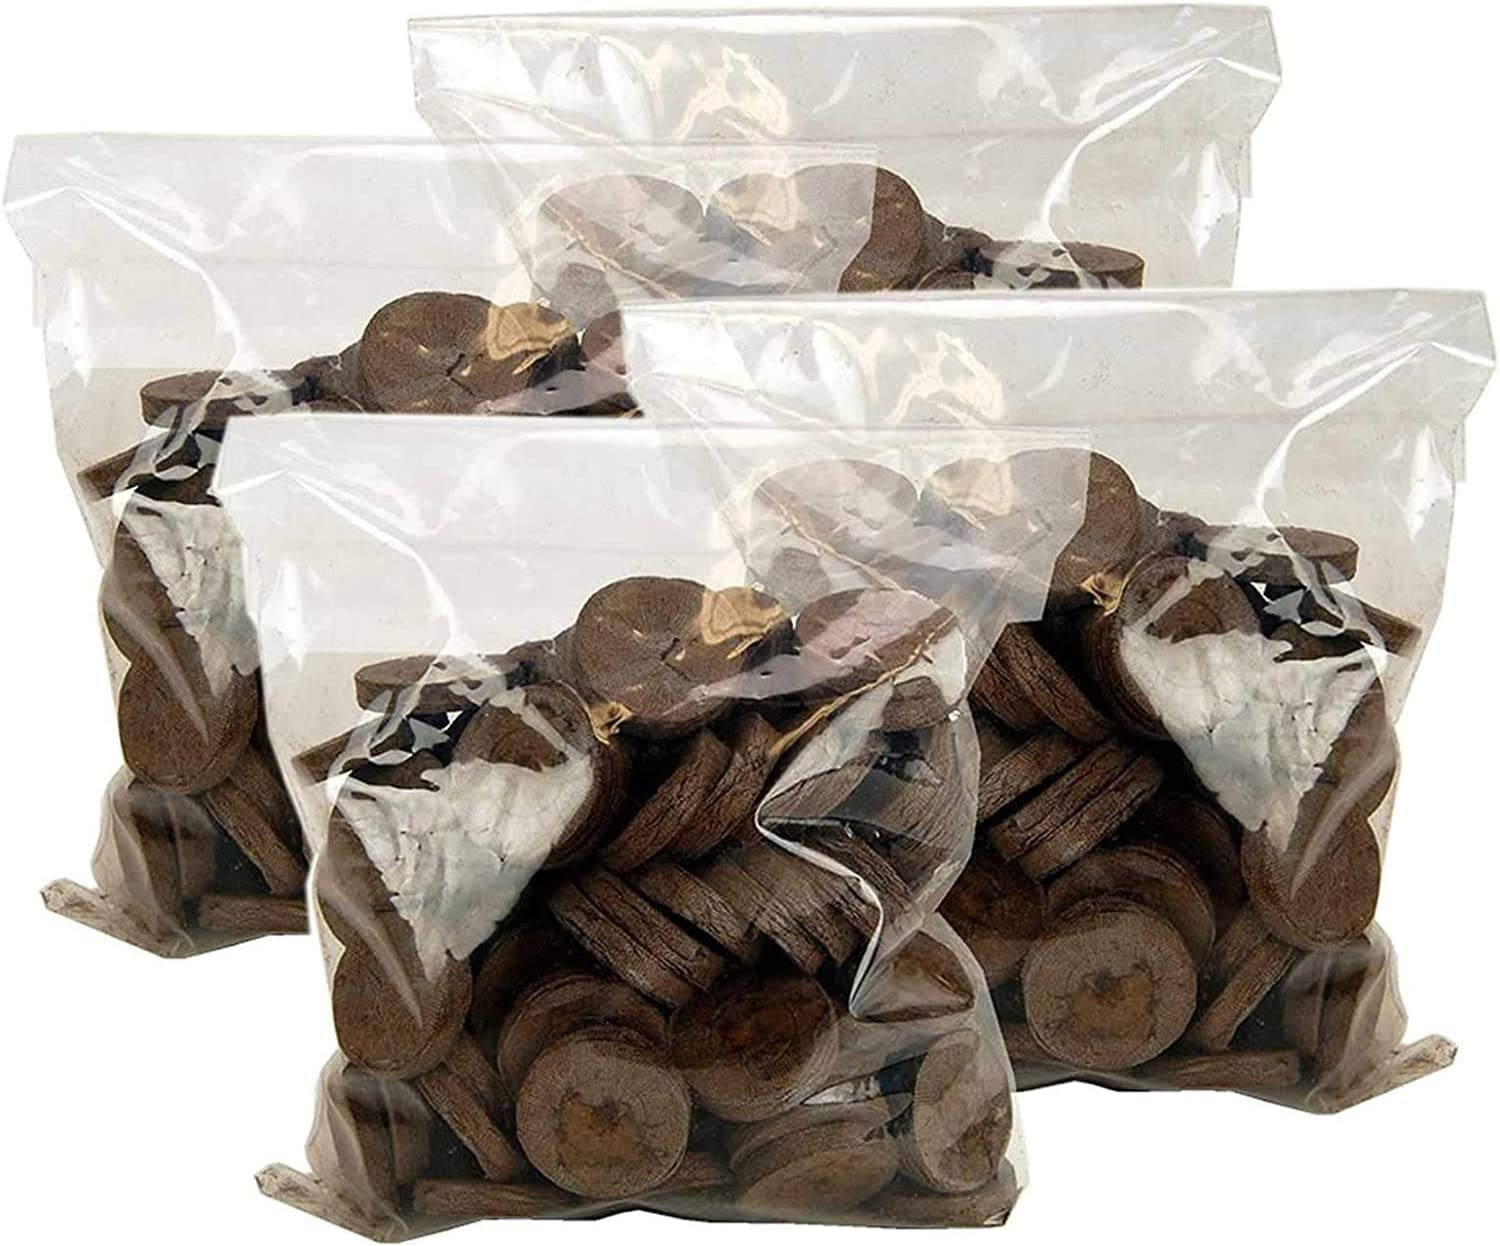 200 Count- Jiffy 7 Peat Soil 42mm Pellets Seeds Starting Plugs: Indoor Seed Starter- Start Planting Indoors for Transplanting to Garden or Planter Pot